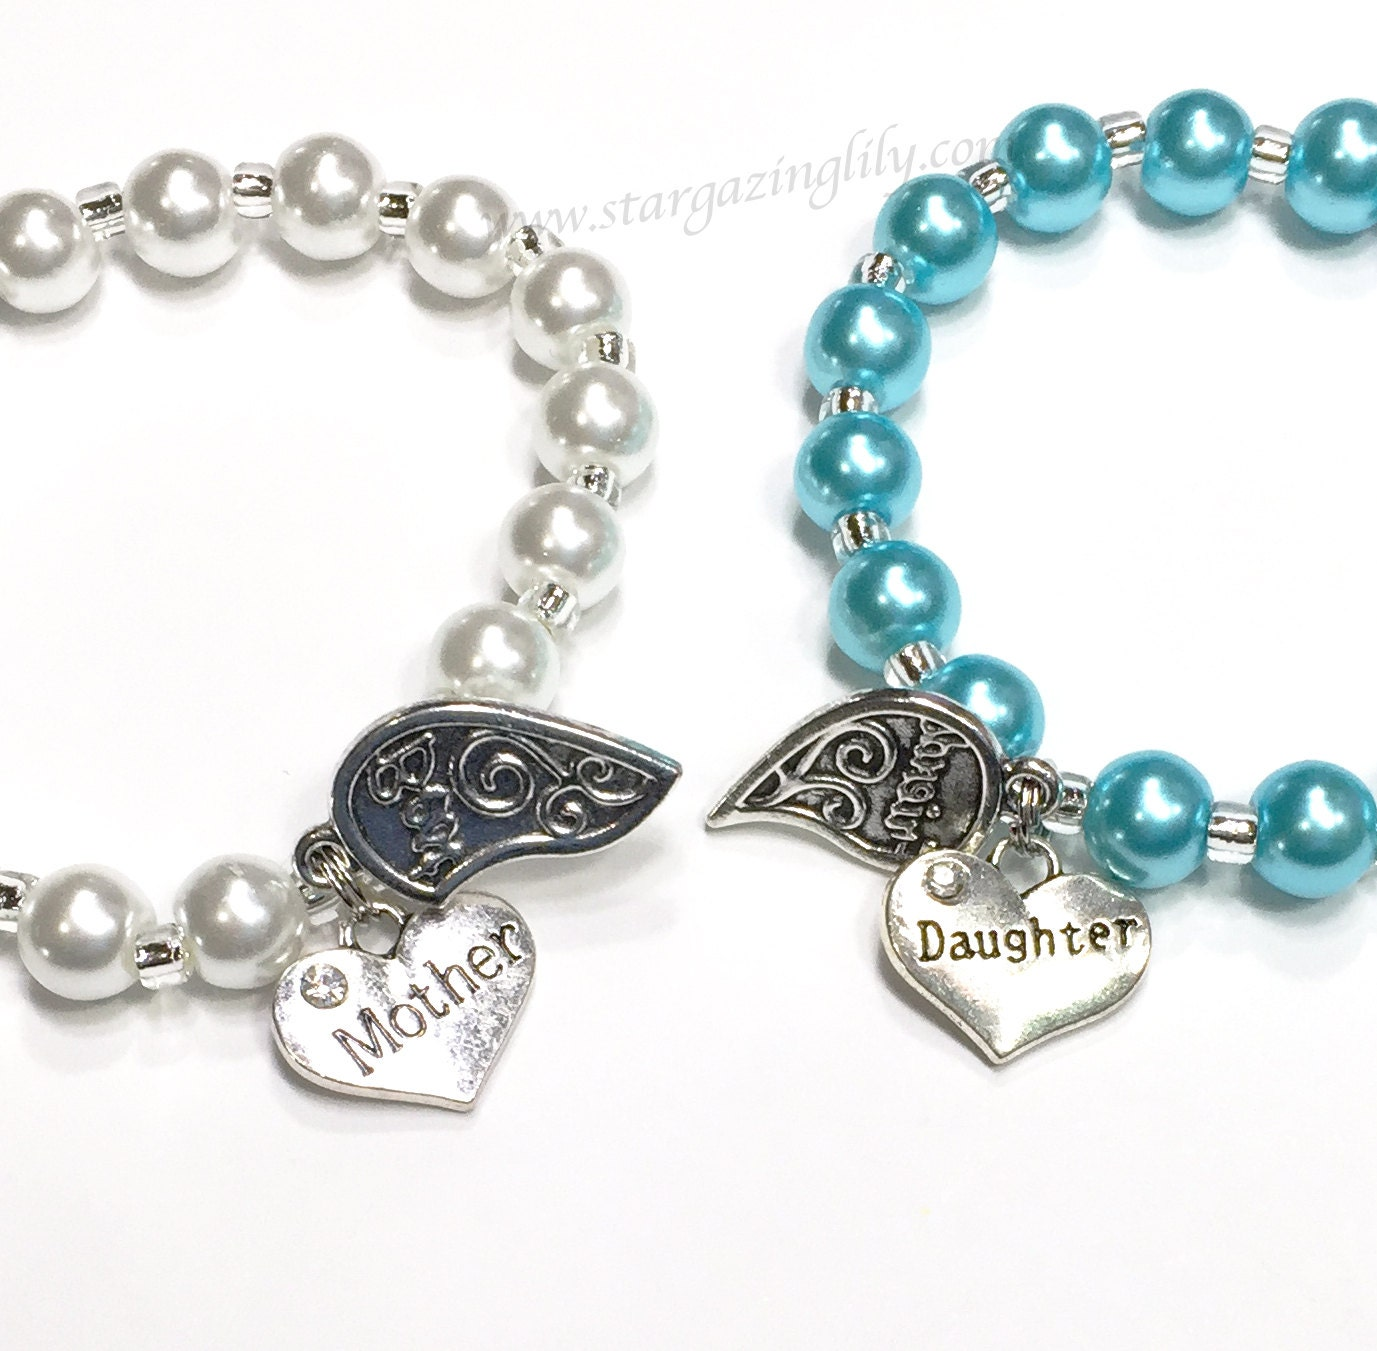 Best Friend Charm Bracelet: Mother Daughter Bracelet Set. Best Friend Charm Bracelet Set